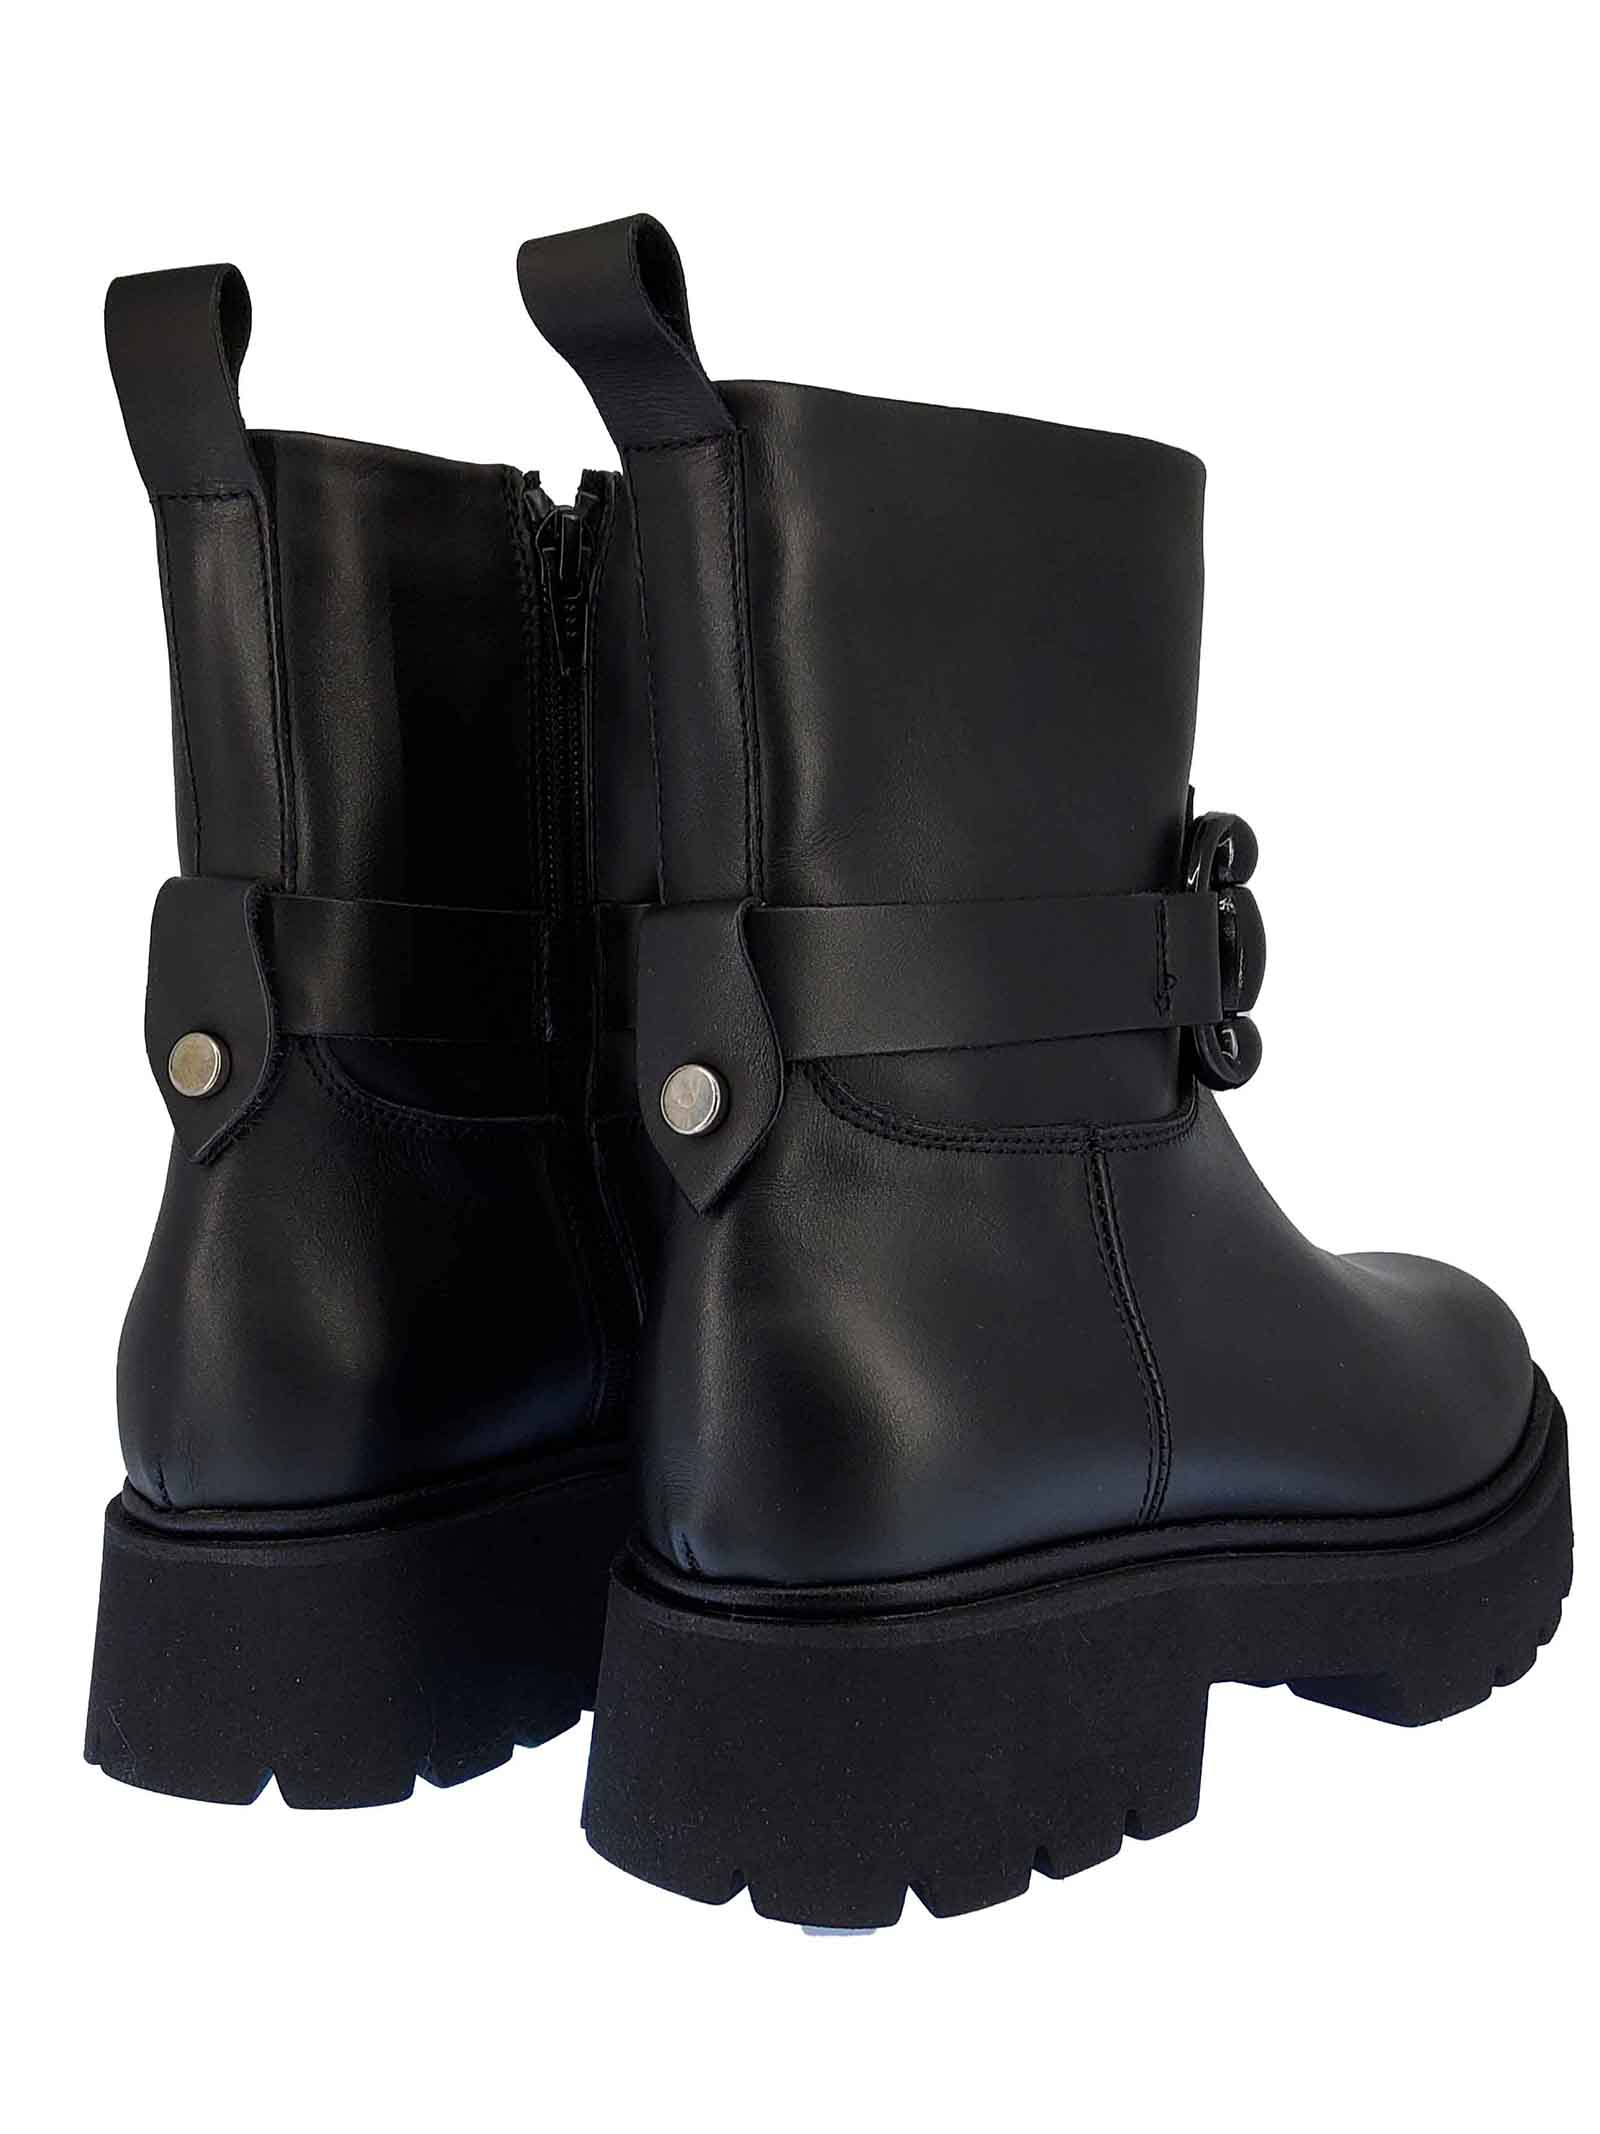 Women's Shoes Amphibius Ankle Bootsi Odette in Black Leather with Matching Strap and Clamp Rubber Tank Sole and Side Zip Janet & Janet   Ankle Boots   02256001